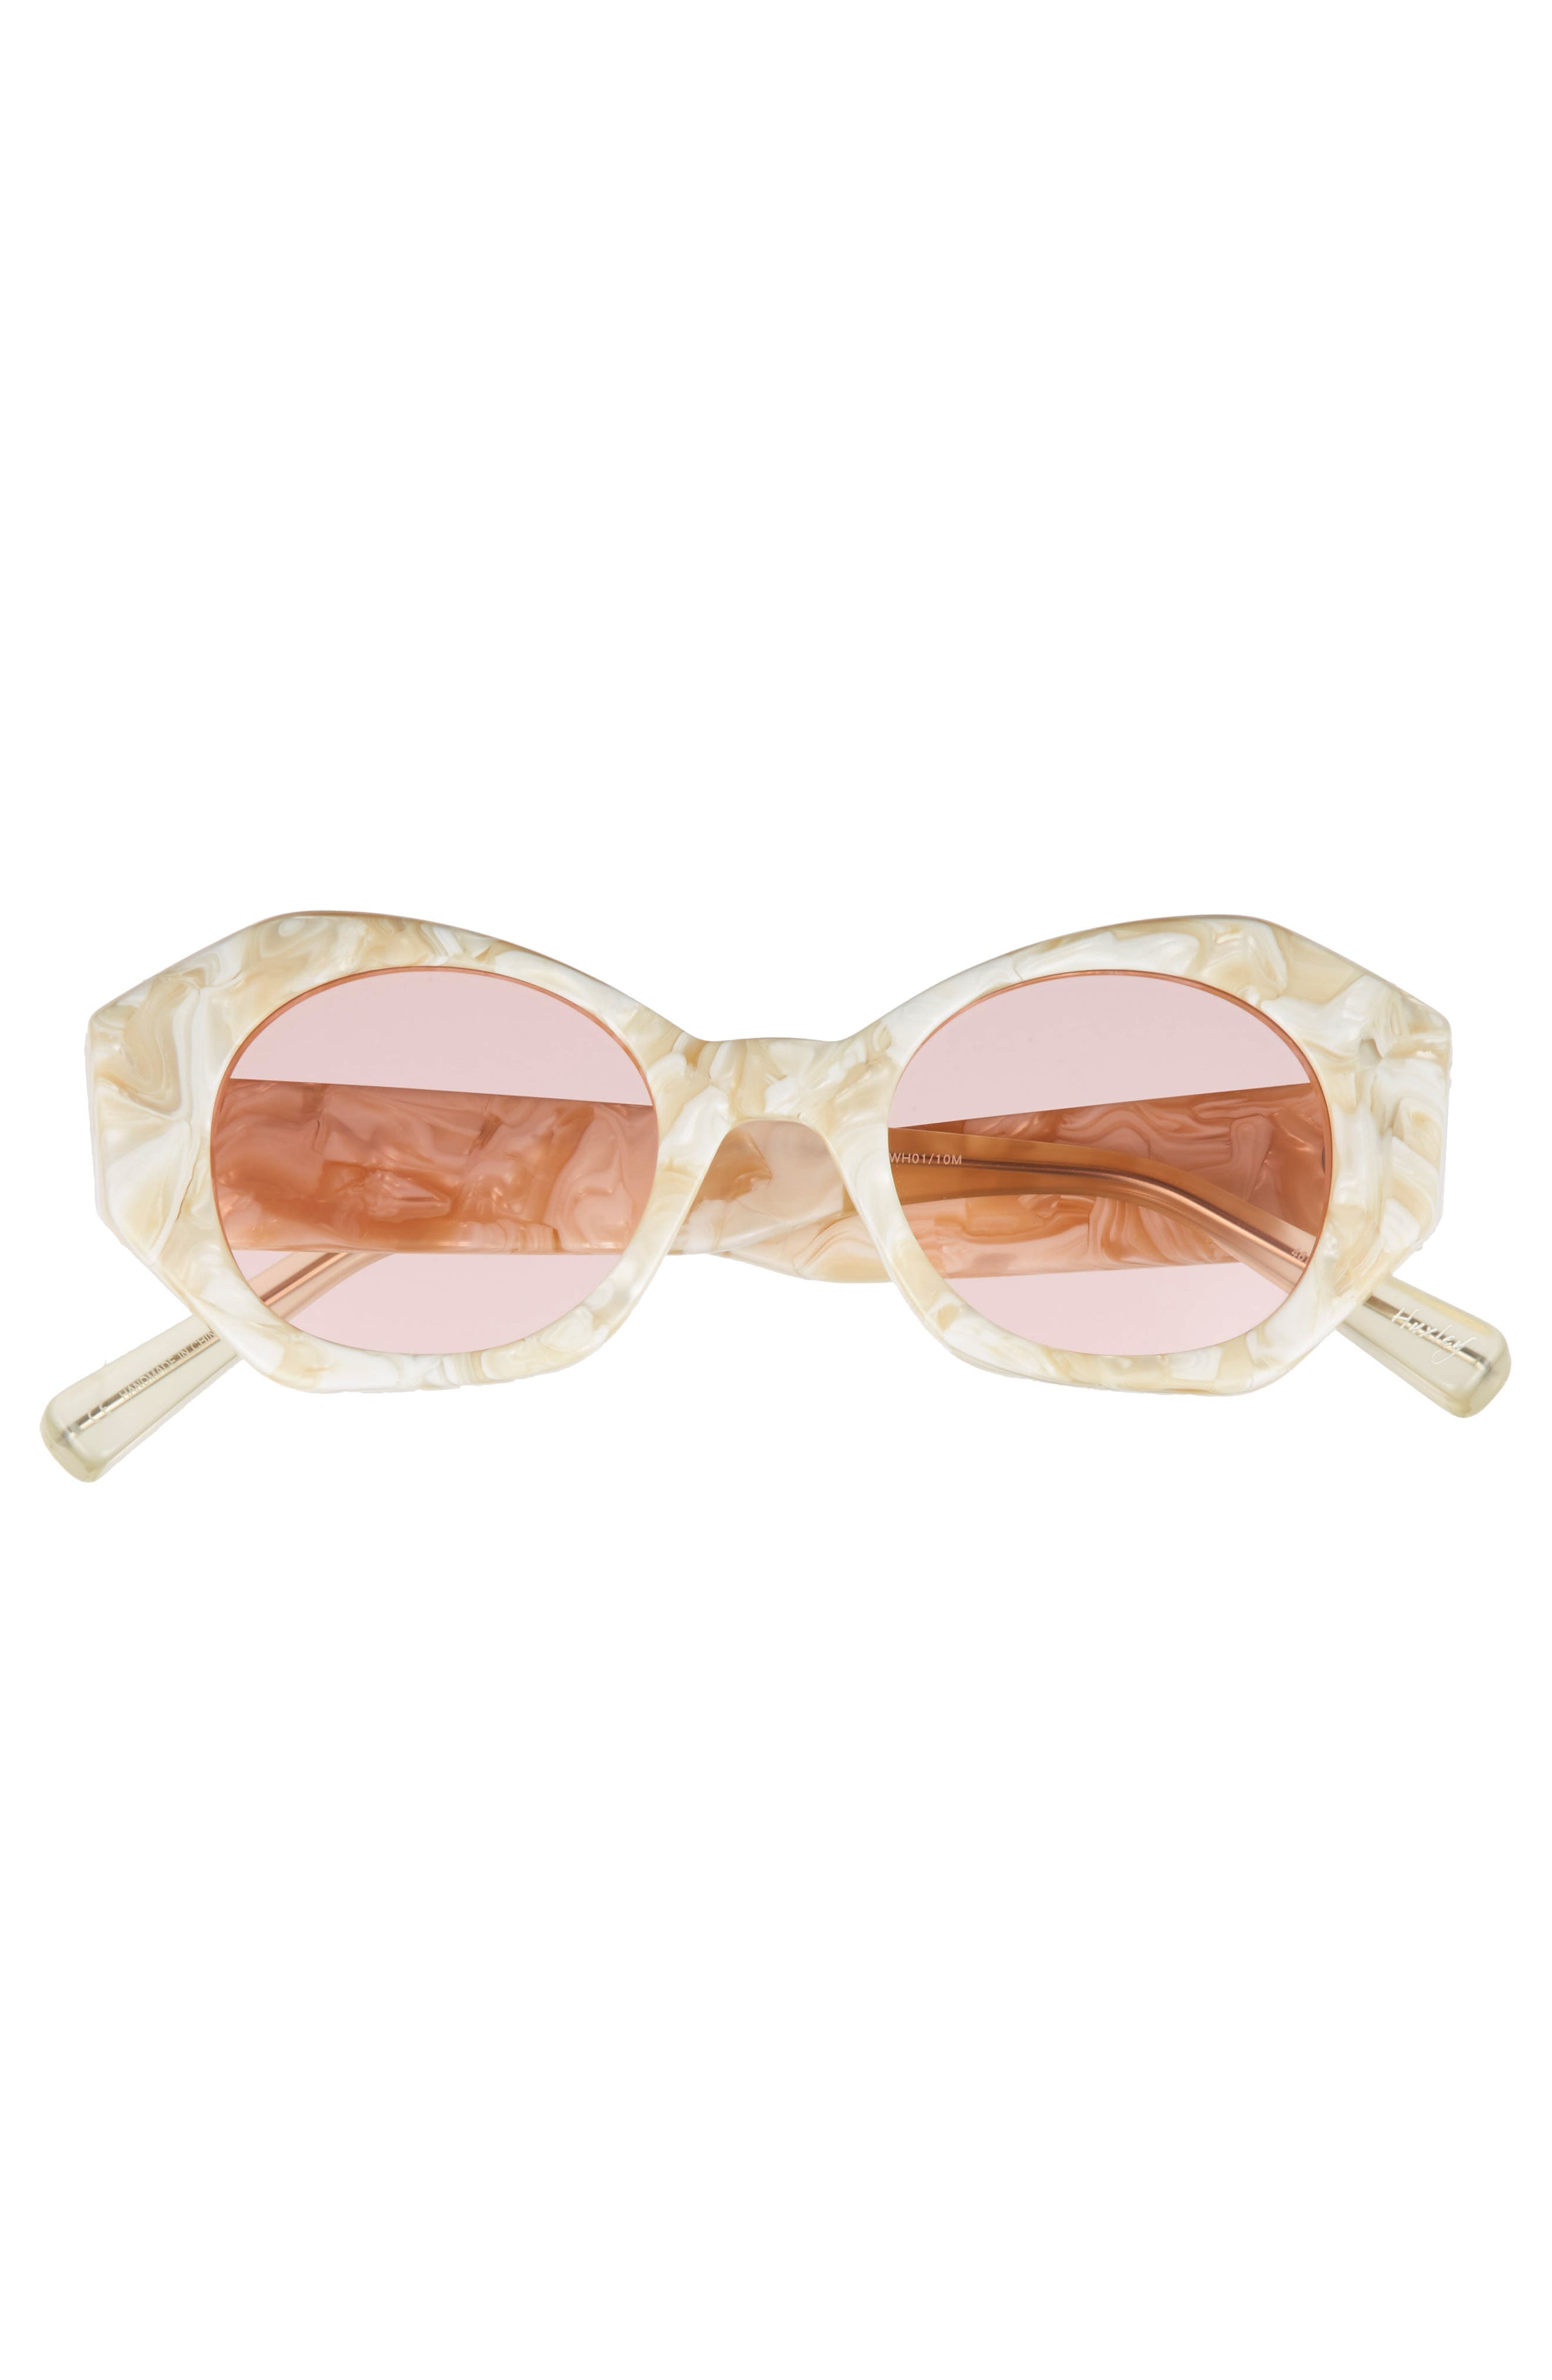 Huxley 46mm Geometric Sunglasses,                             Alternate thumbnail 3, color,                             White/ Pink